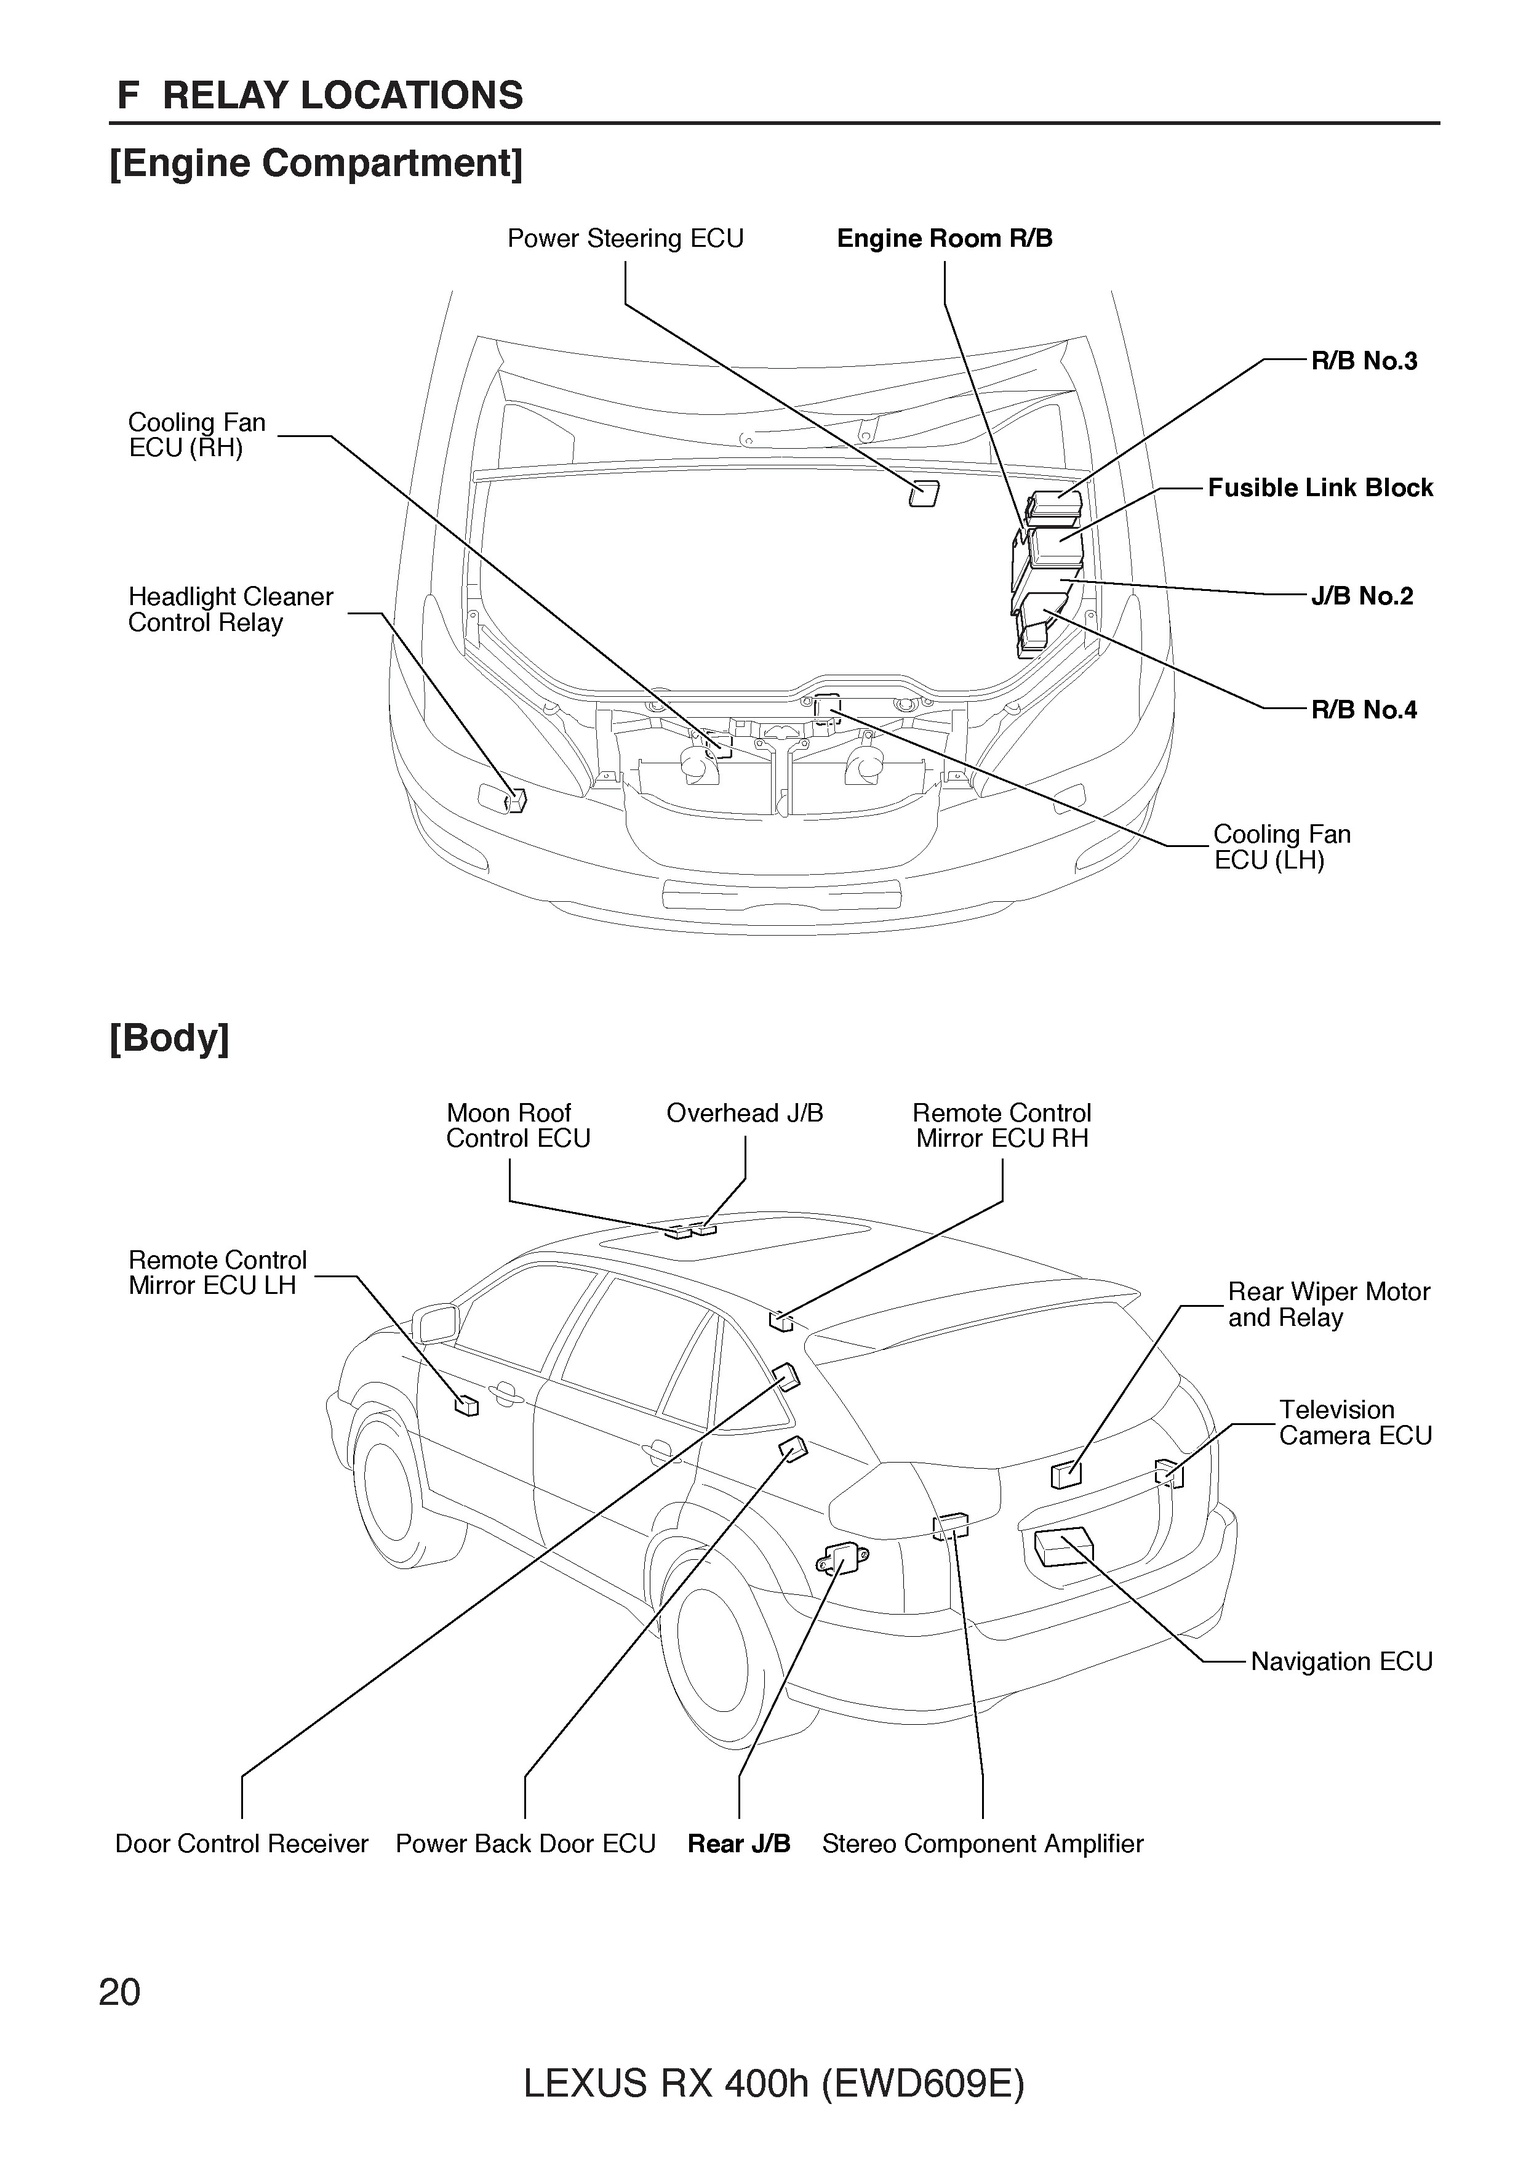 Lexus Rx400h Wiring Diagrams Archive Of Automotive Diagram Free 2005 Oem Electrical Rh Sellfy Com 2006